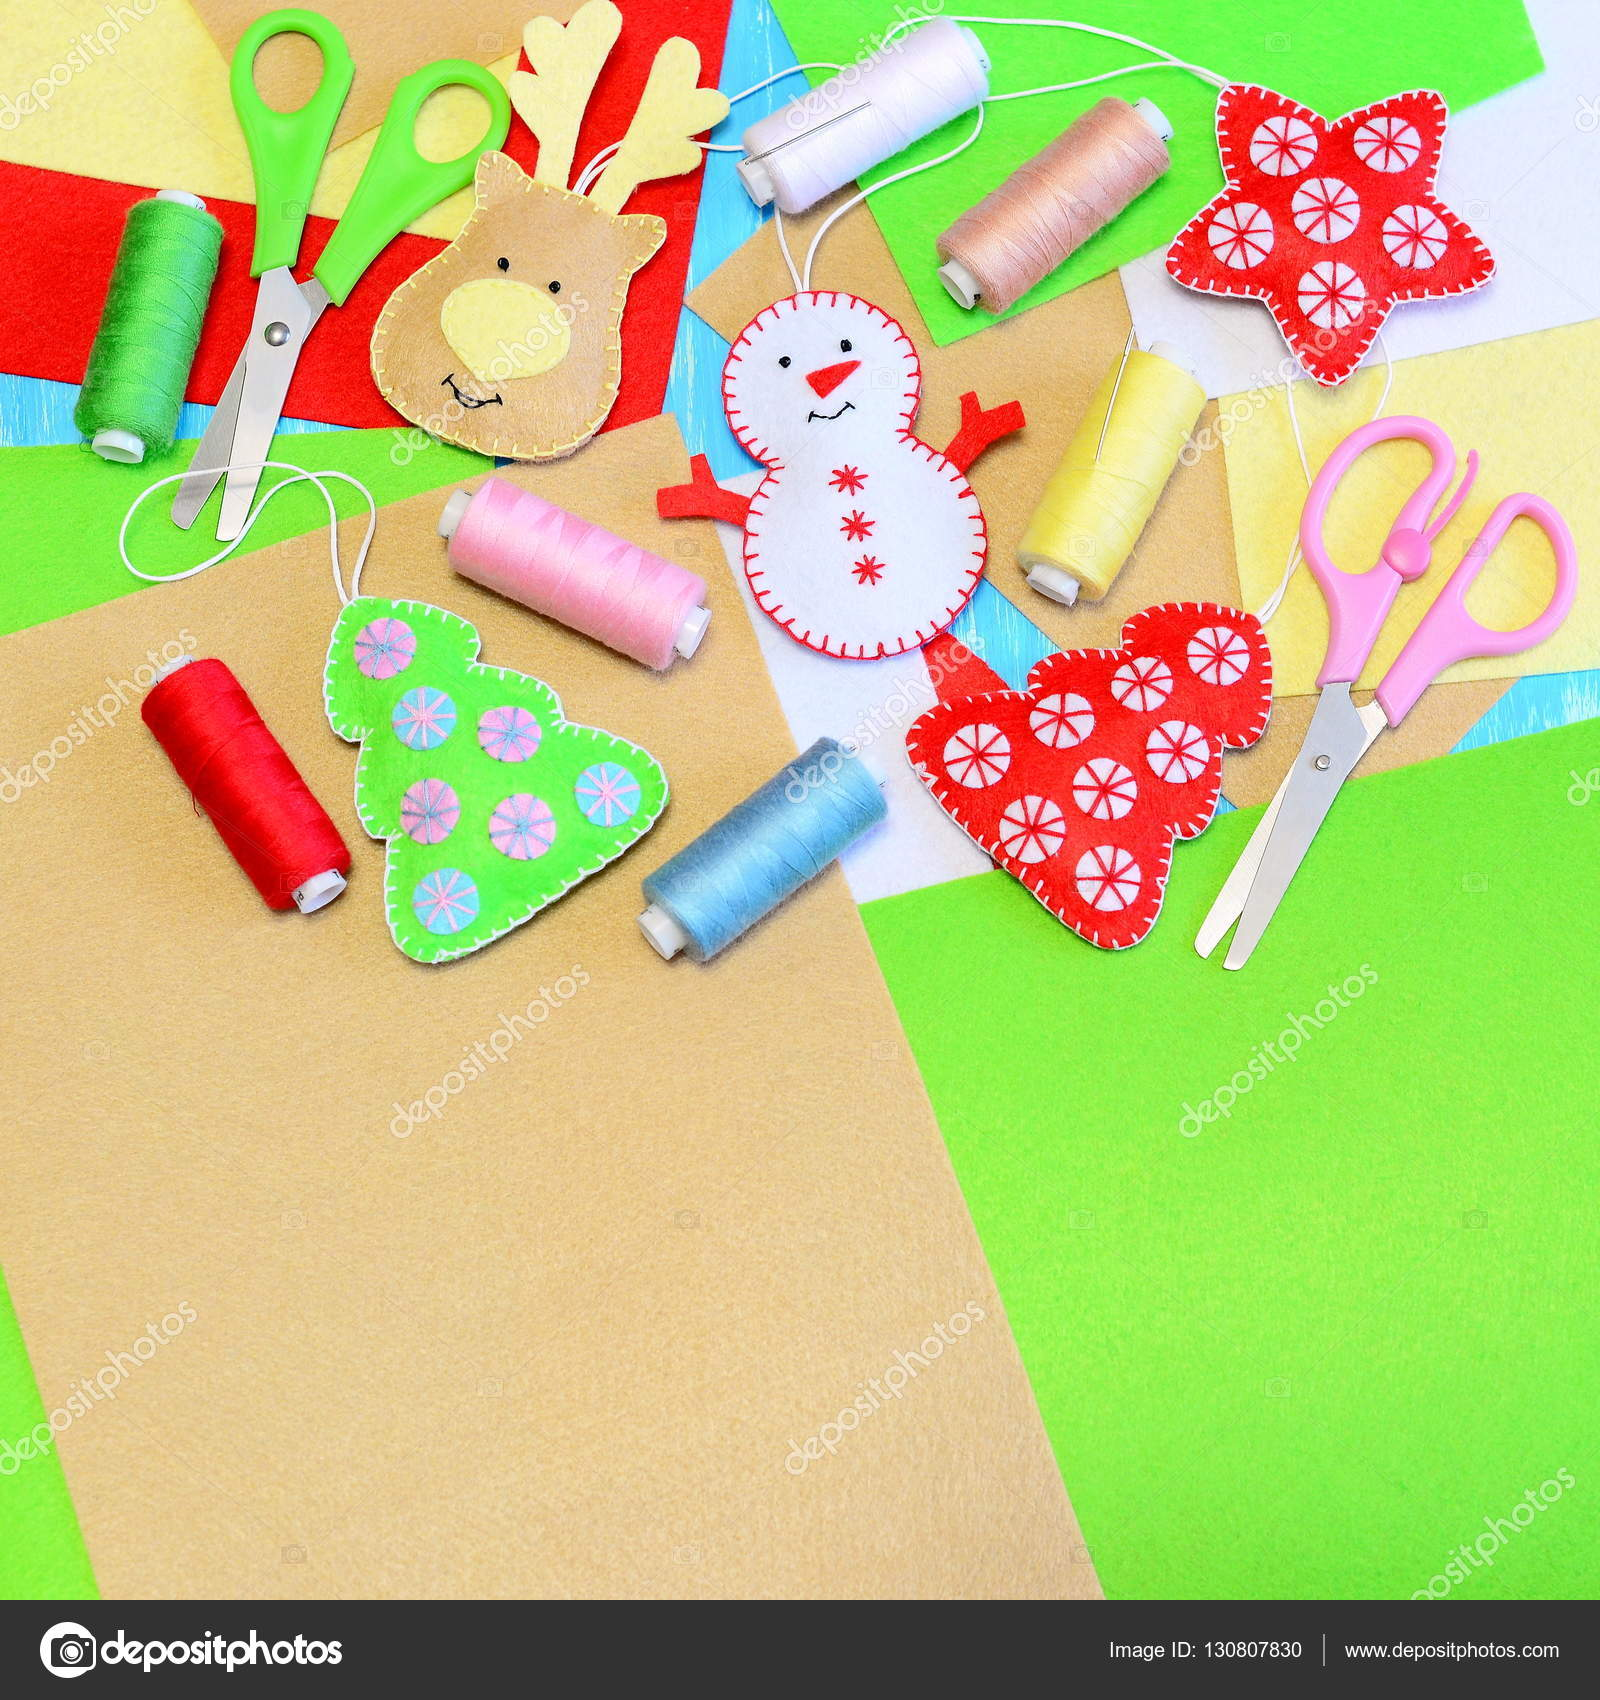 tree ornaments crafts. Felt Christmas tree, star, snowman, deer ...